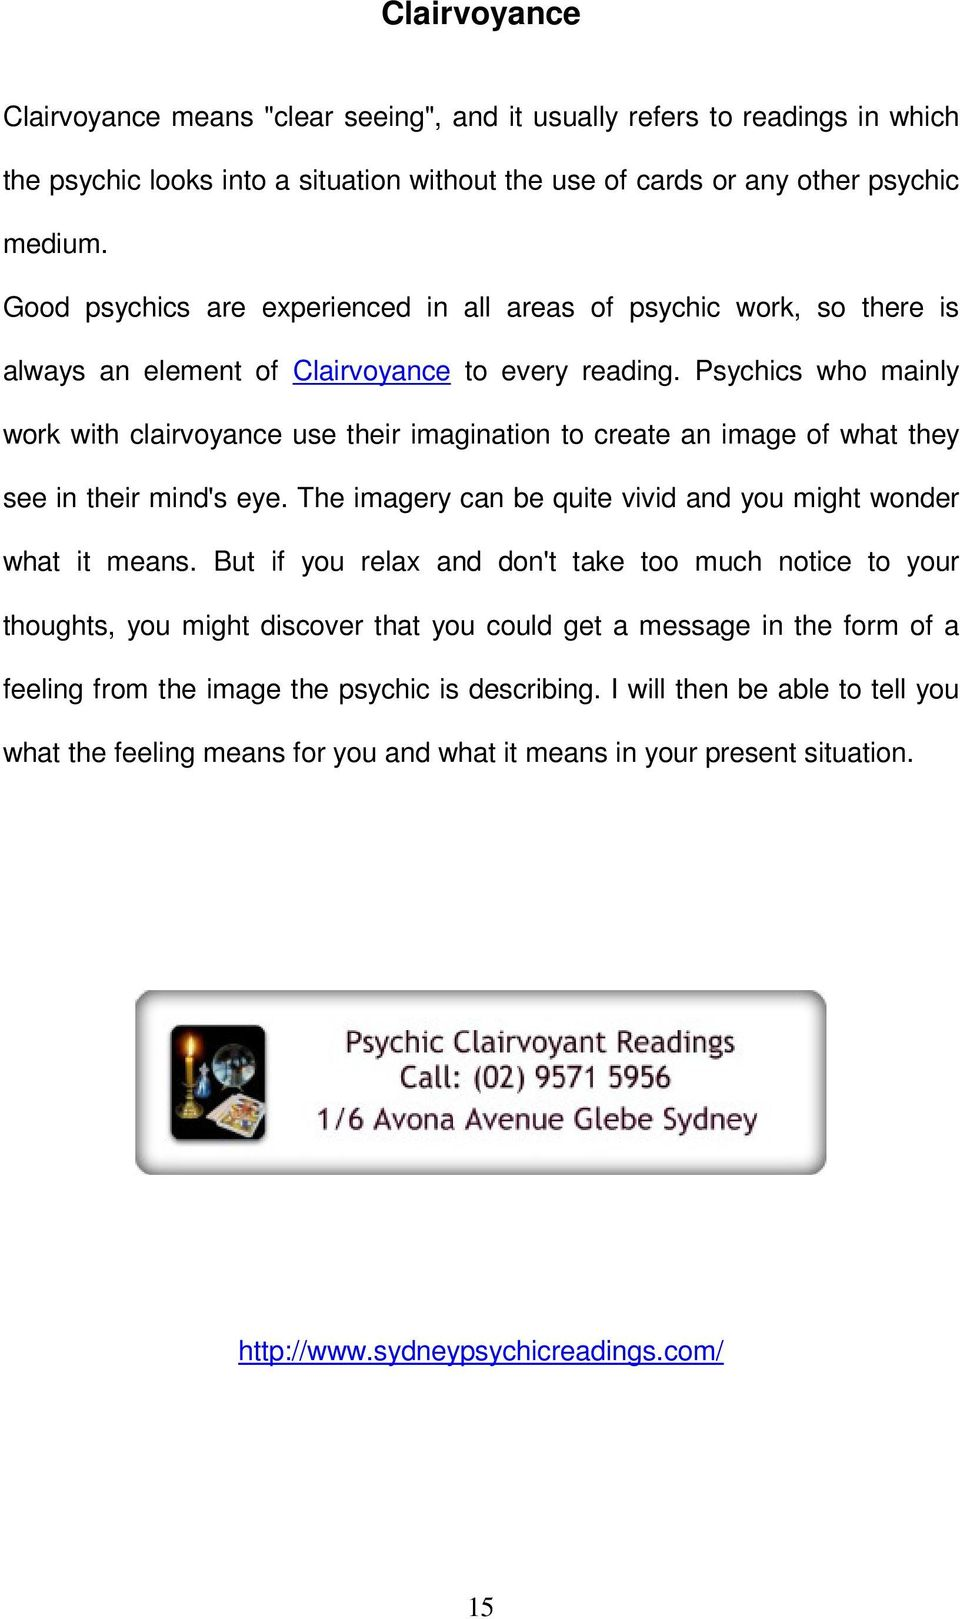 Psychics who mainly work with clairvoyance use their imagination to create an image of what they see in their mind's eye. The imagery can be quite vivid and you might wonder what it means.